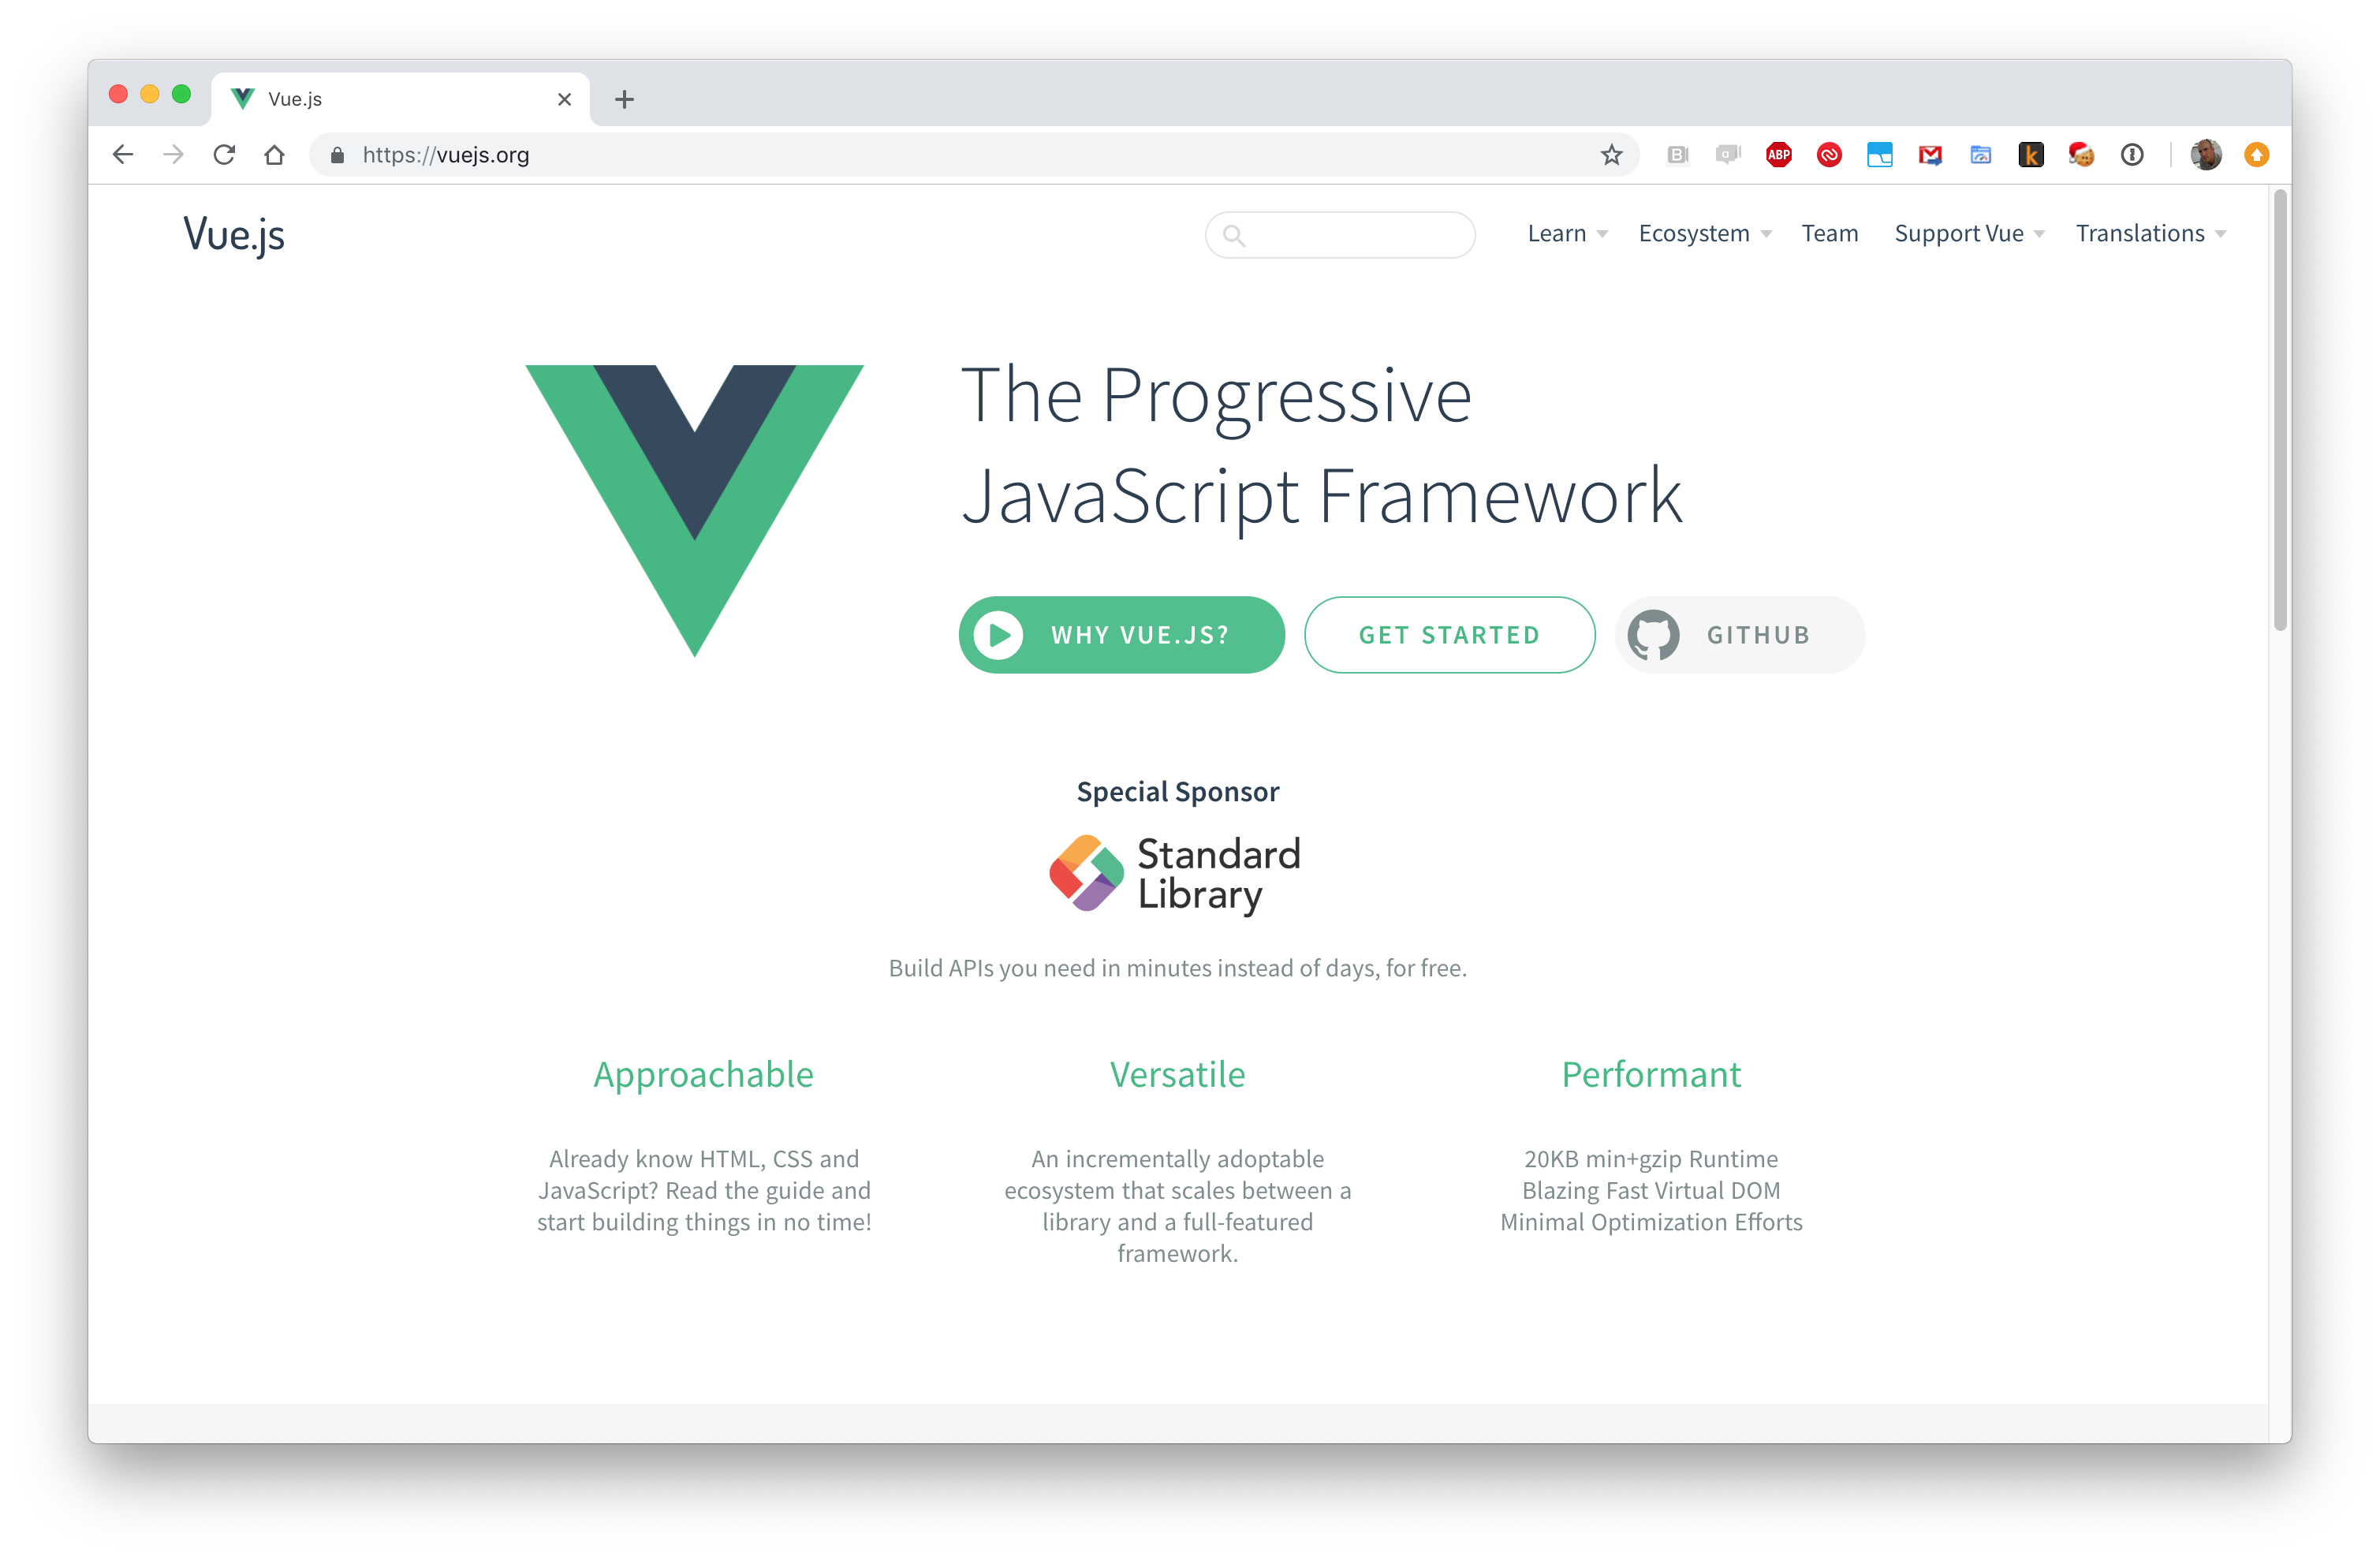 Vue is a Progressive JavaScript Framework